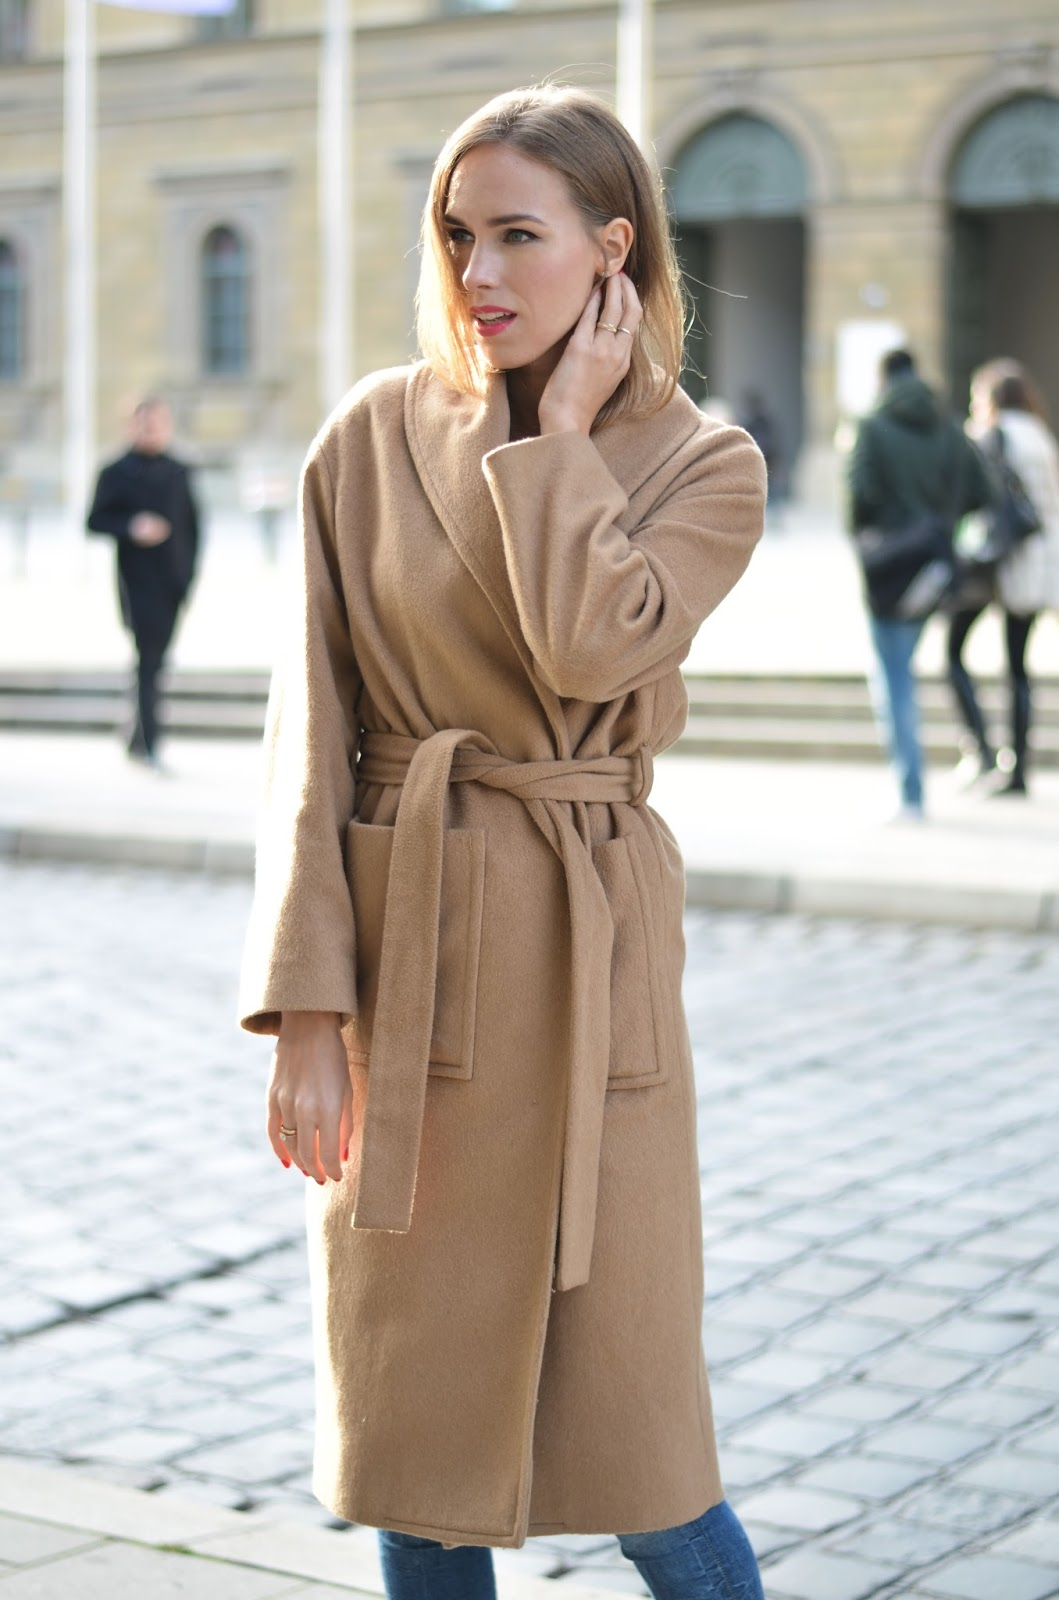 kristjaana mere mango belted camel coat winter outfit